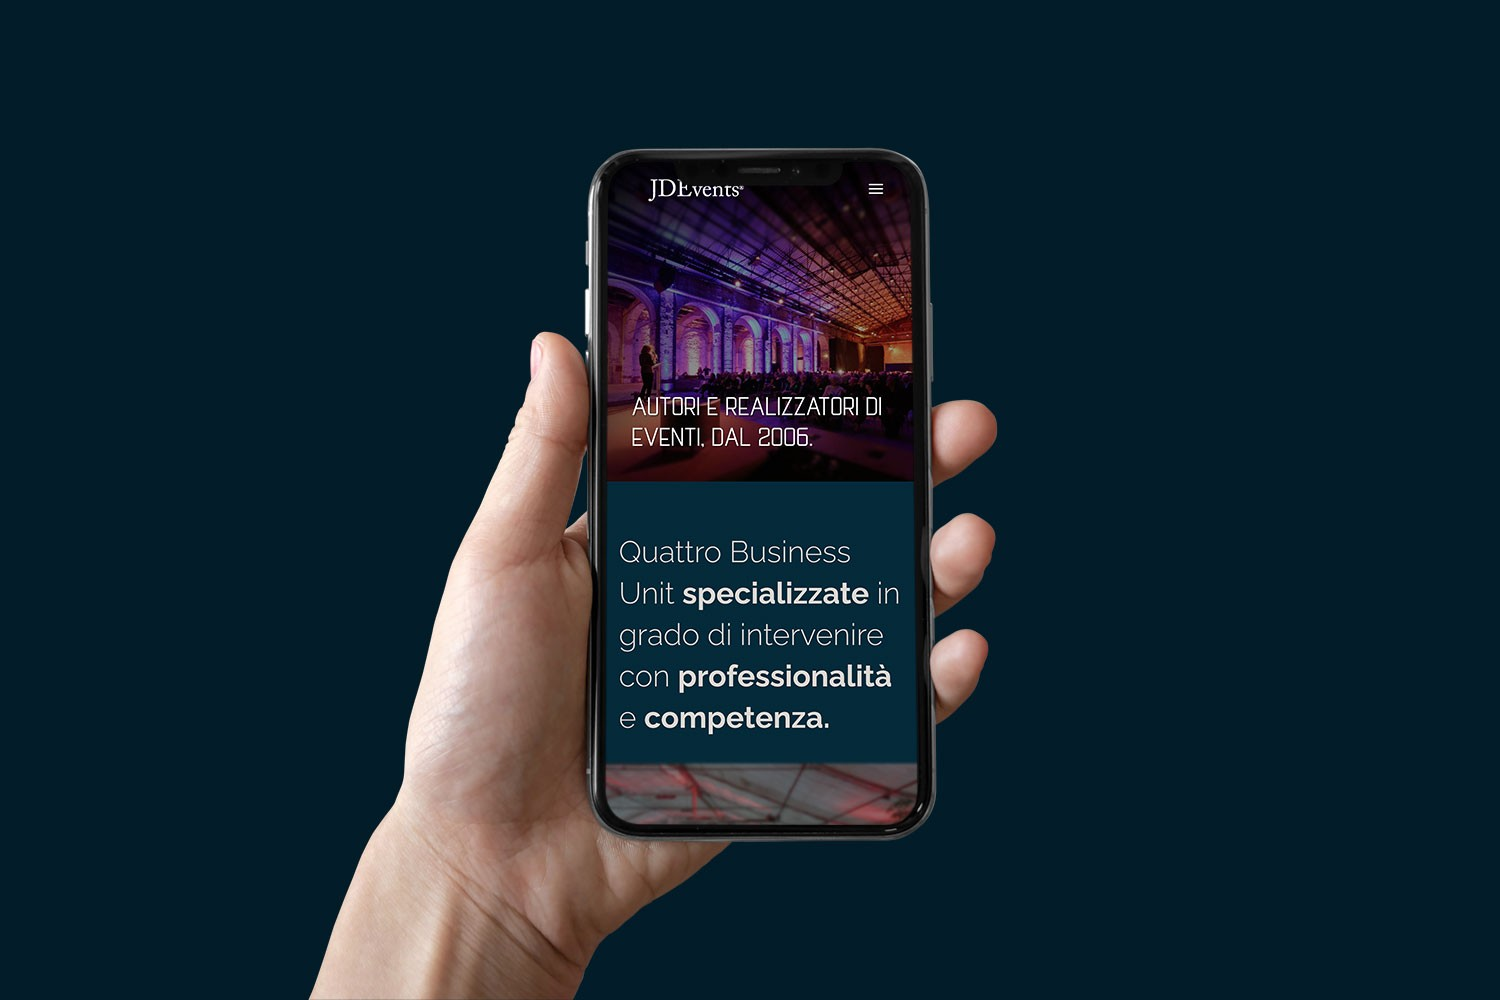 jd-events mobile